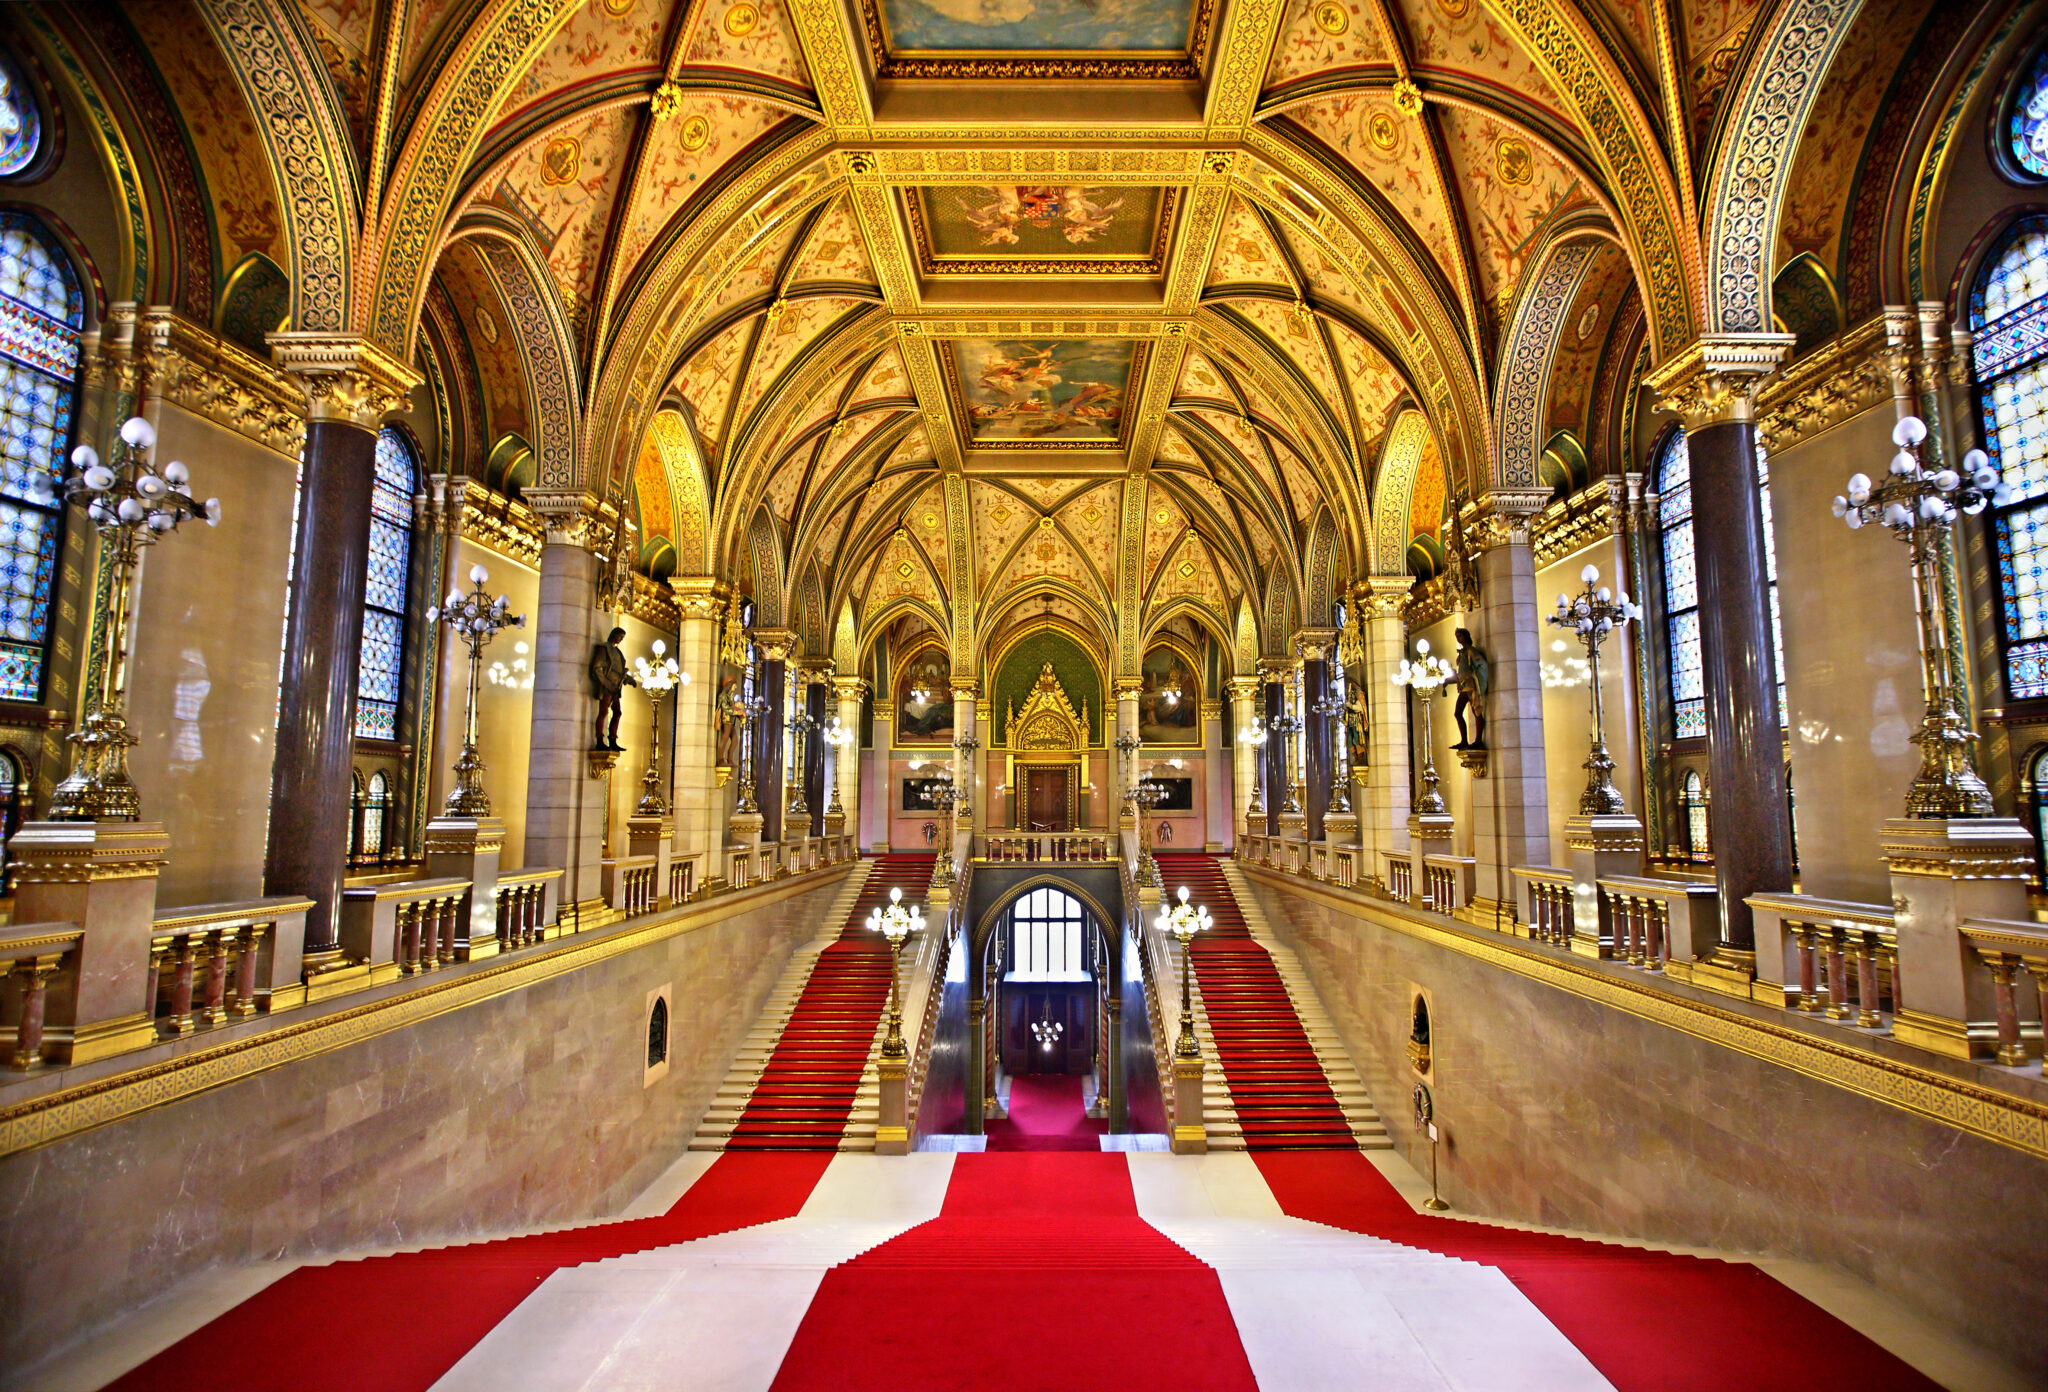 The Grand Staircase of the Budapest Parliament Building